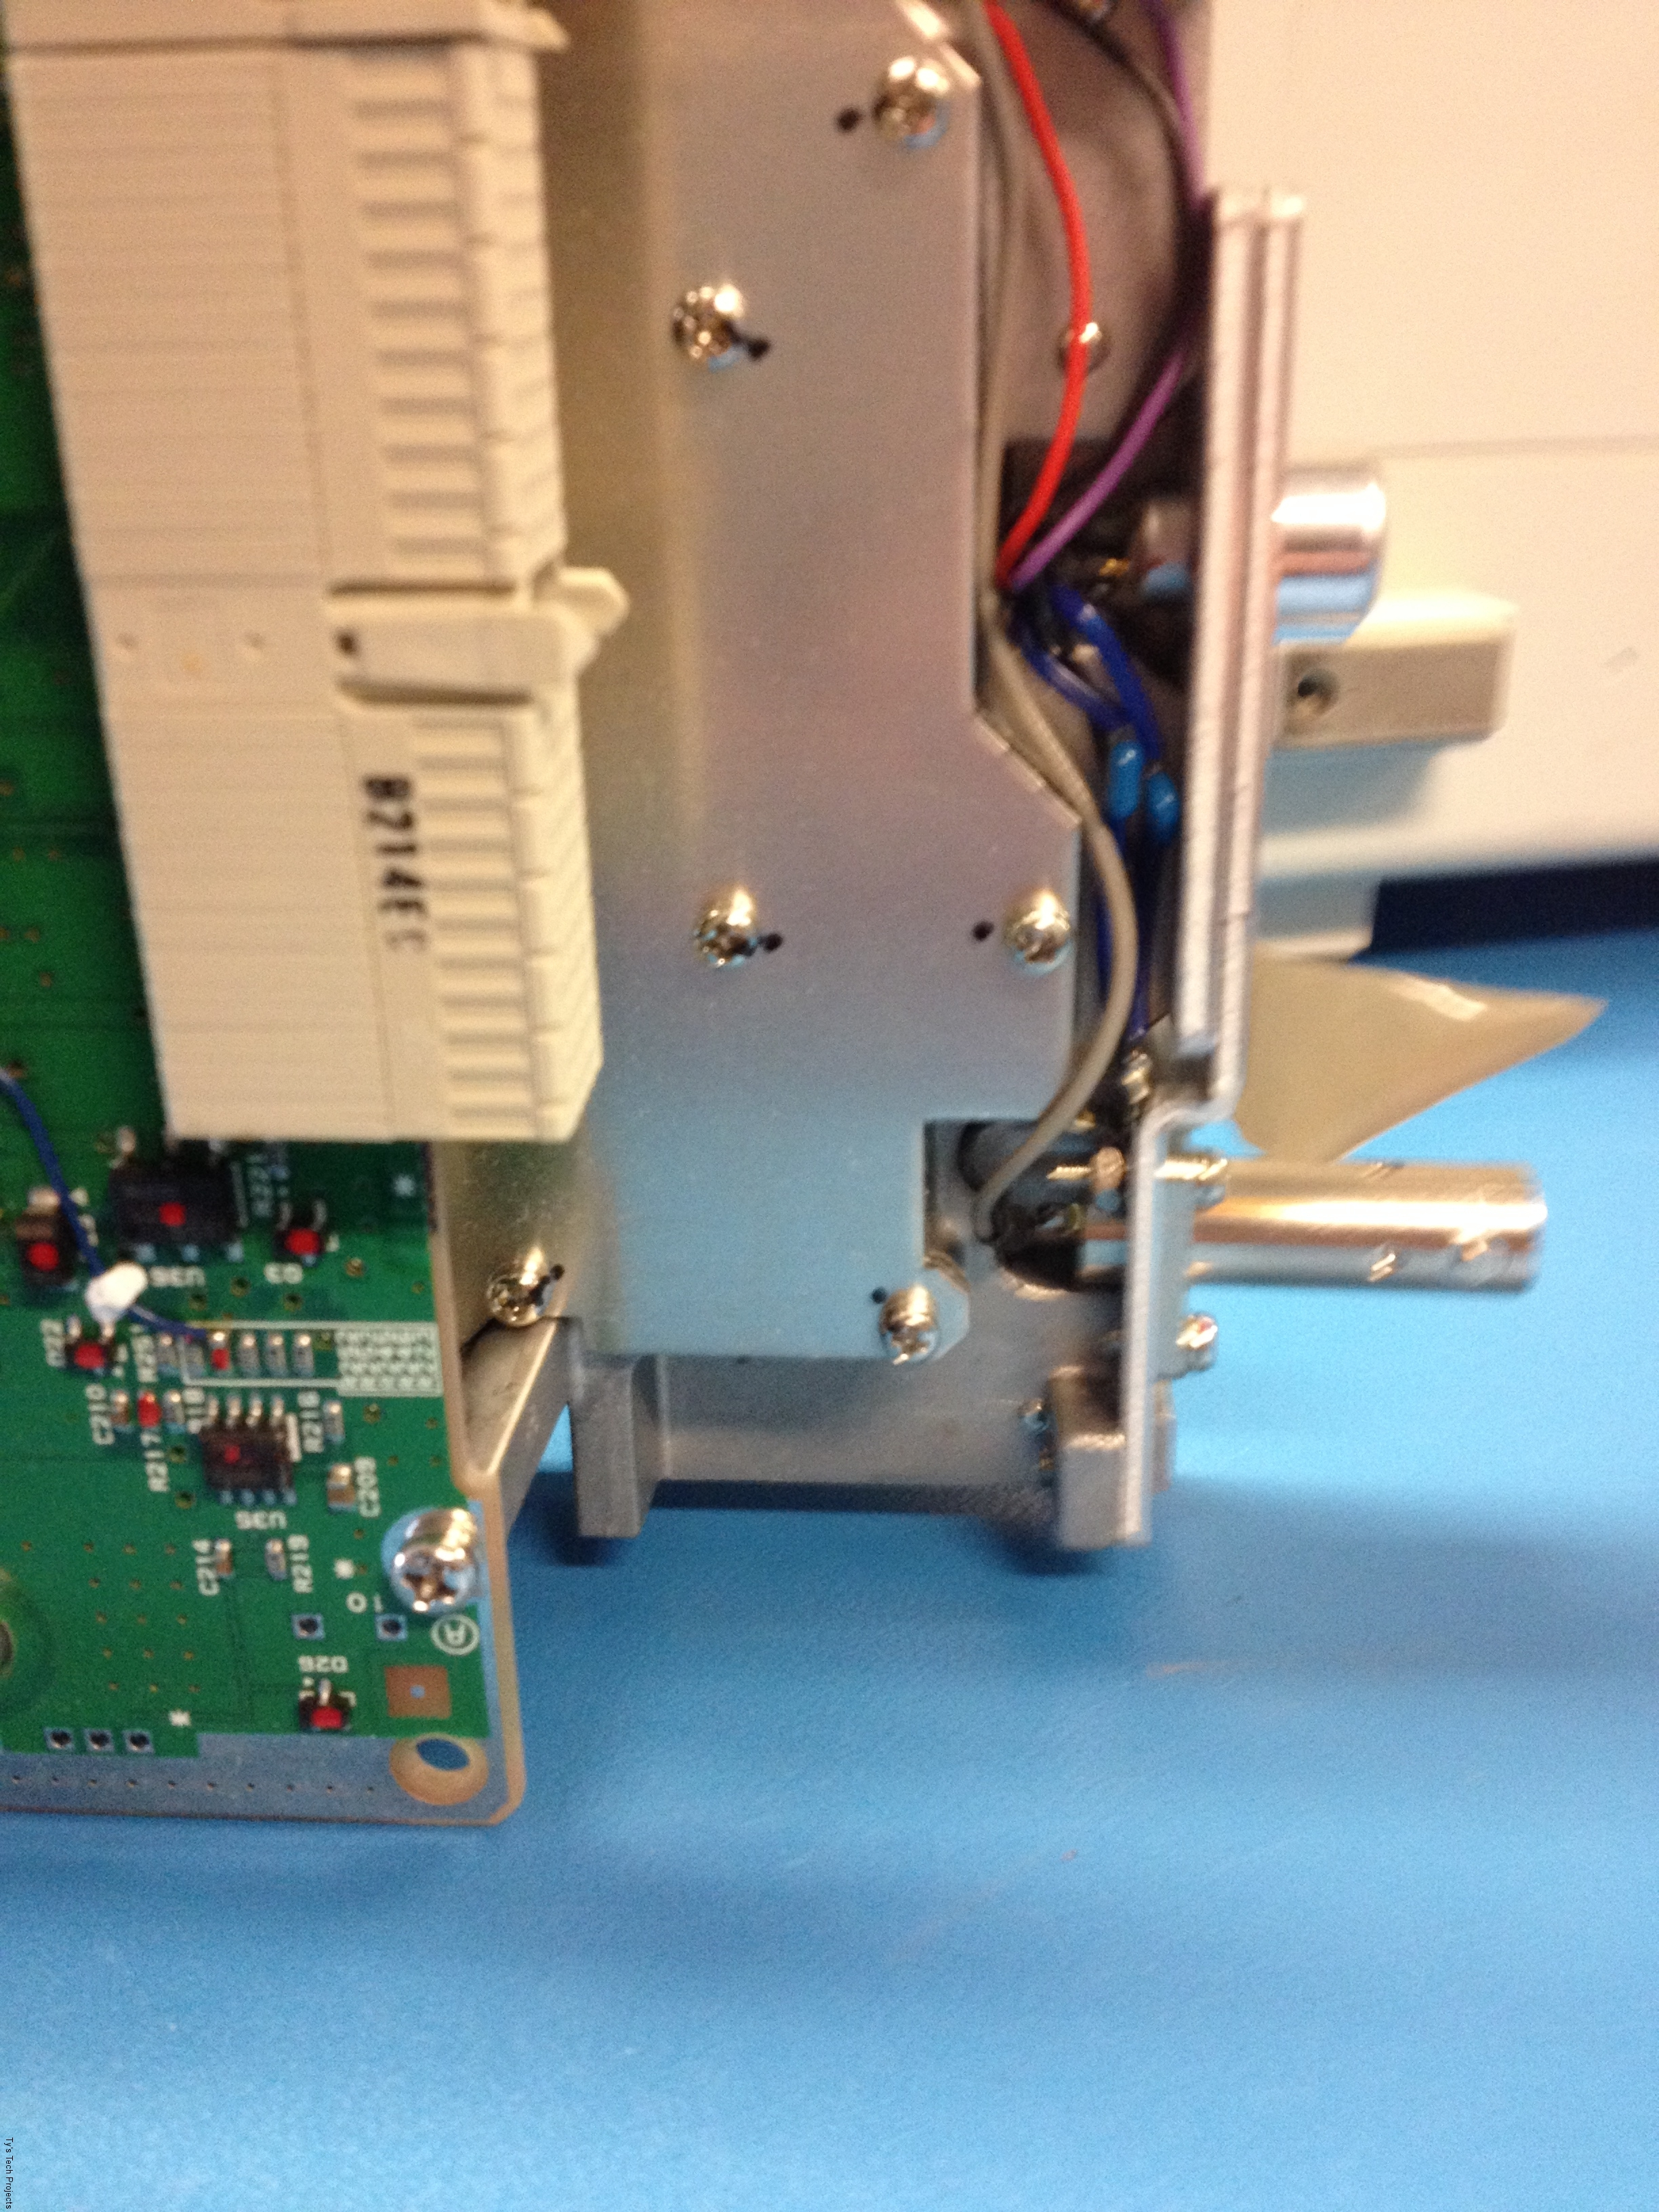 Underside of the board where the PLL circuit lives